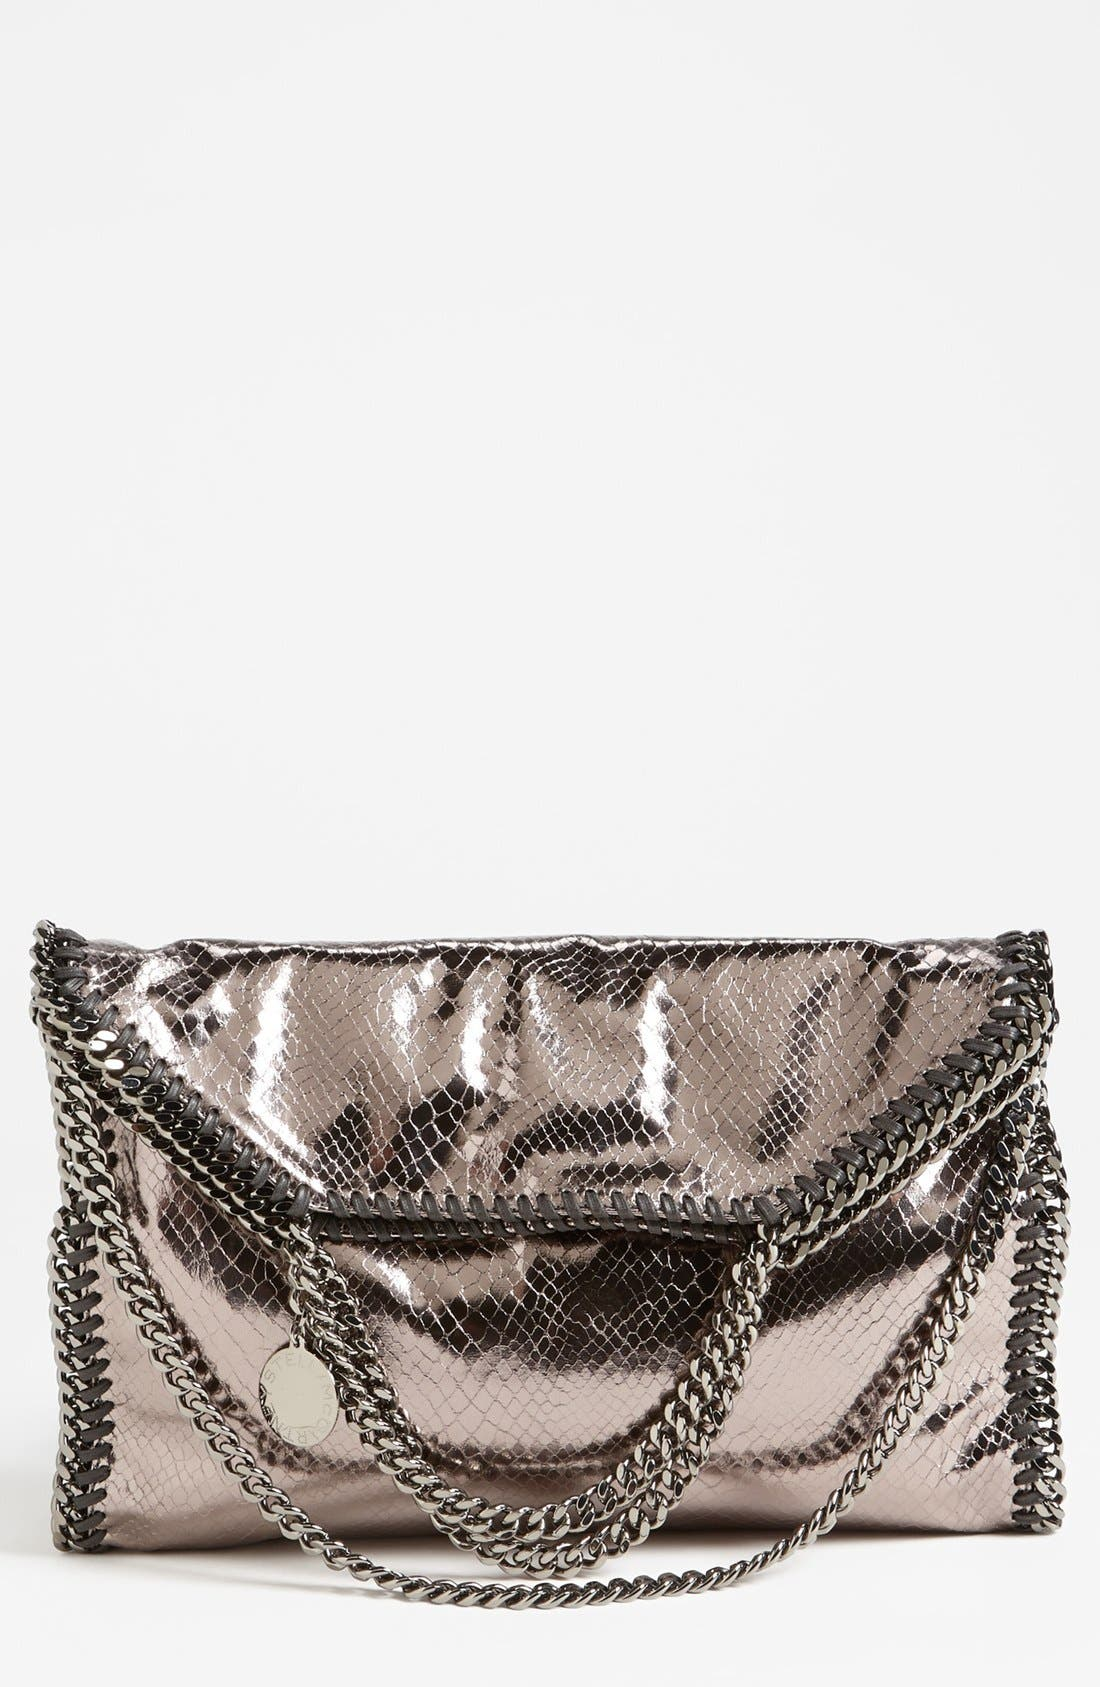 Alternate Image 1 Selected - Stella McCartney 'Falabella' Metallic Snake Print Foldover Tote, Small